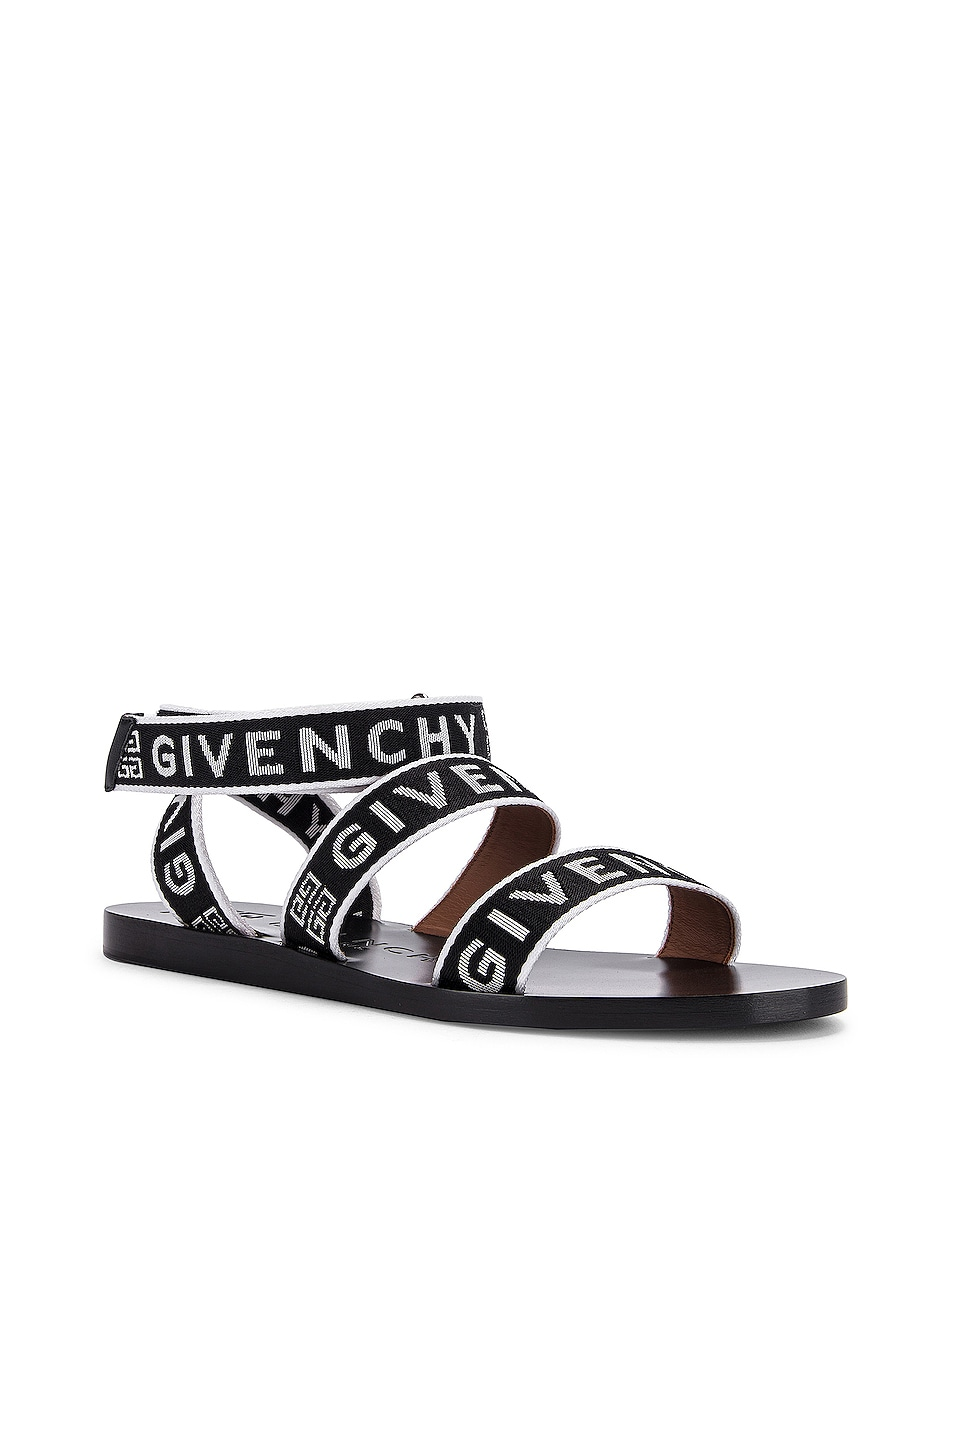 Image 2 of Givenchy Ankle Strap Sandals in Black & White